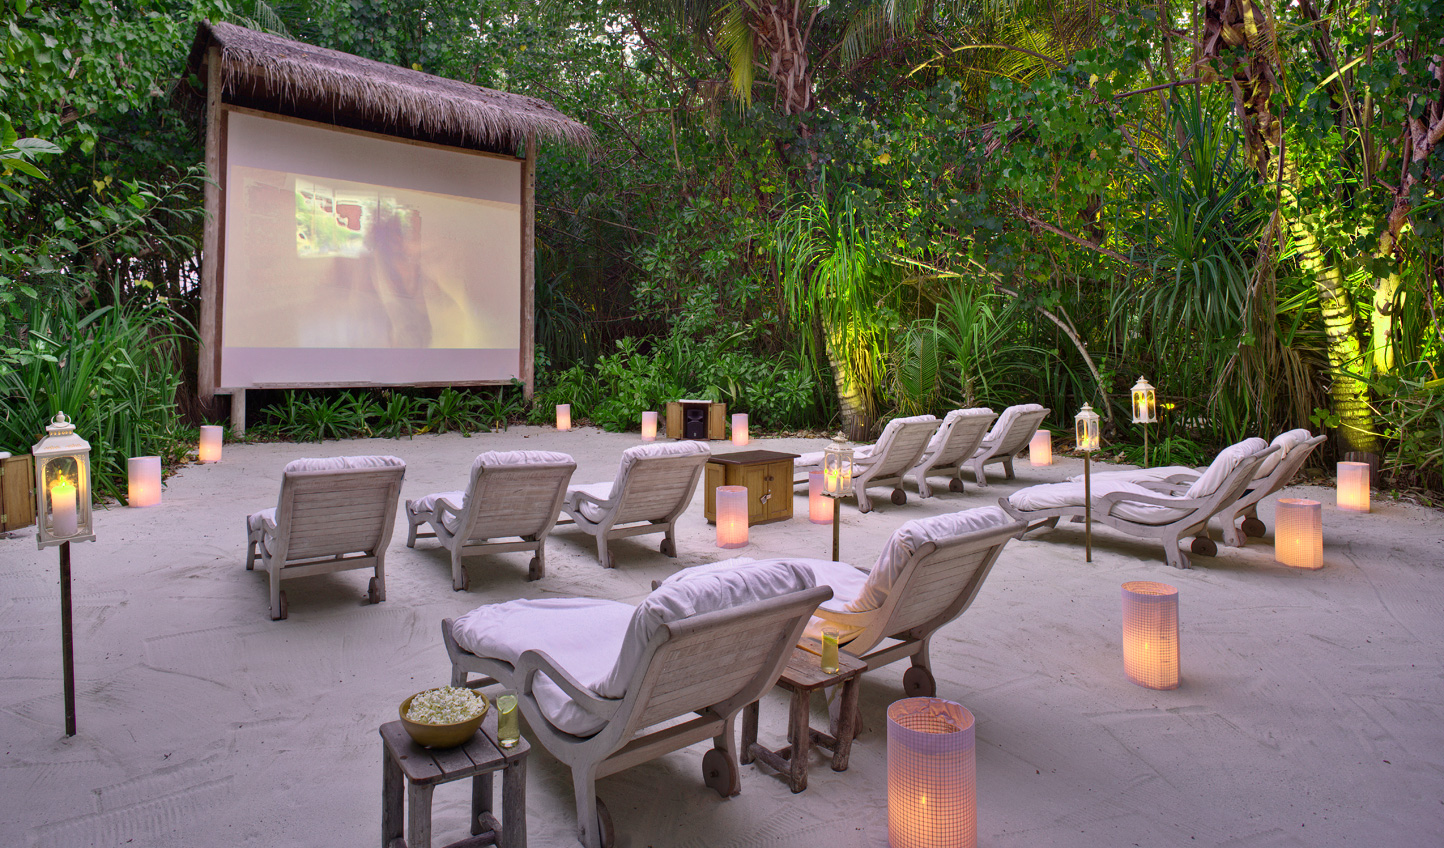 Grab some popcorn and enjoy a film beneath the stars